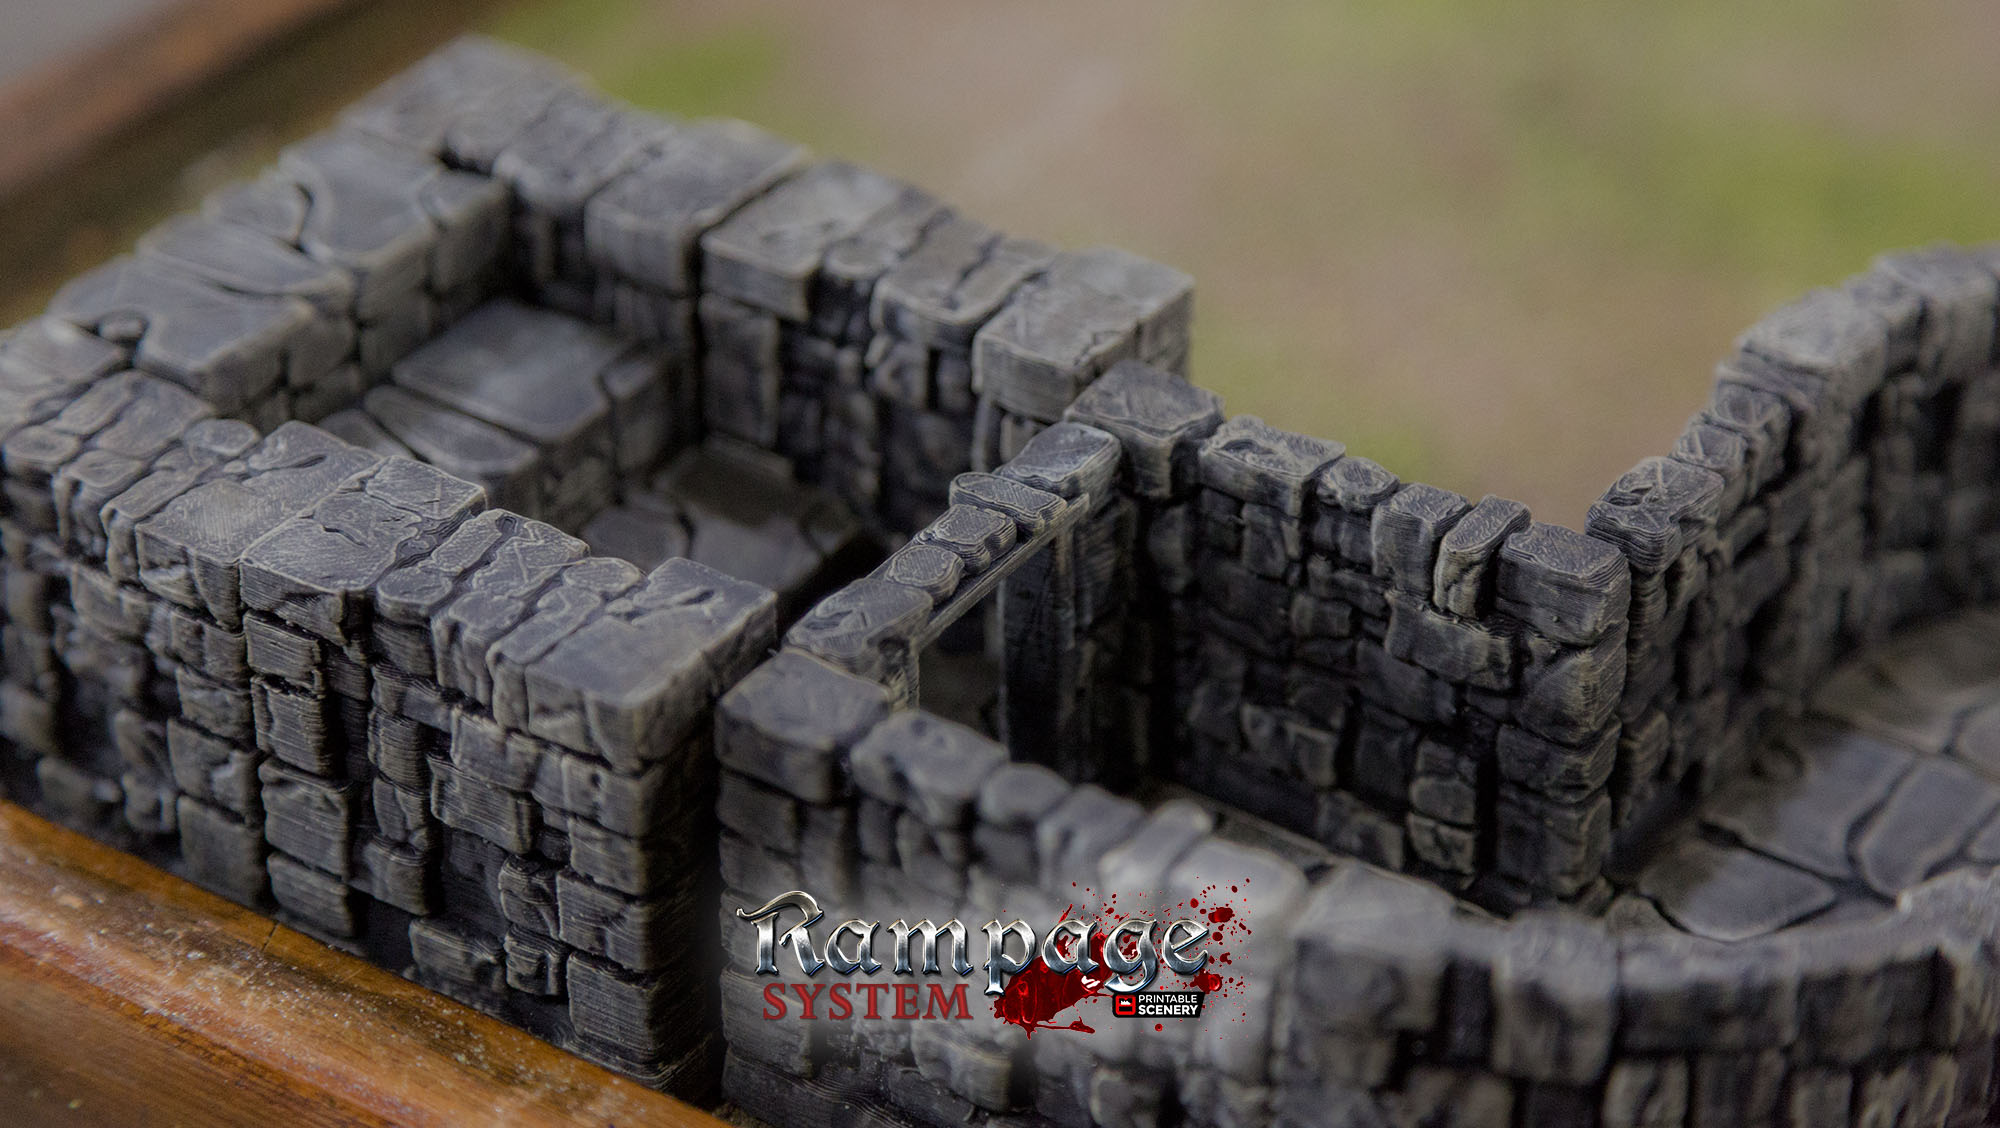 picture about 3d Printable Dungeon Tiles named Rampage Dungeon Tiles - Uncomplicated Fixed as a result of Printablescenery